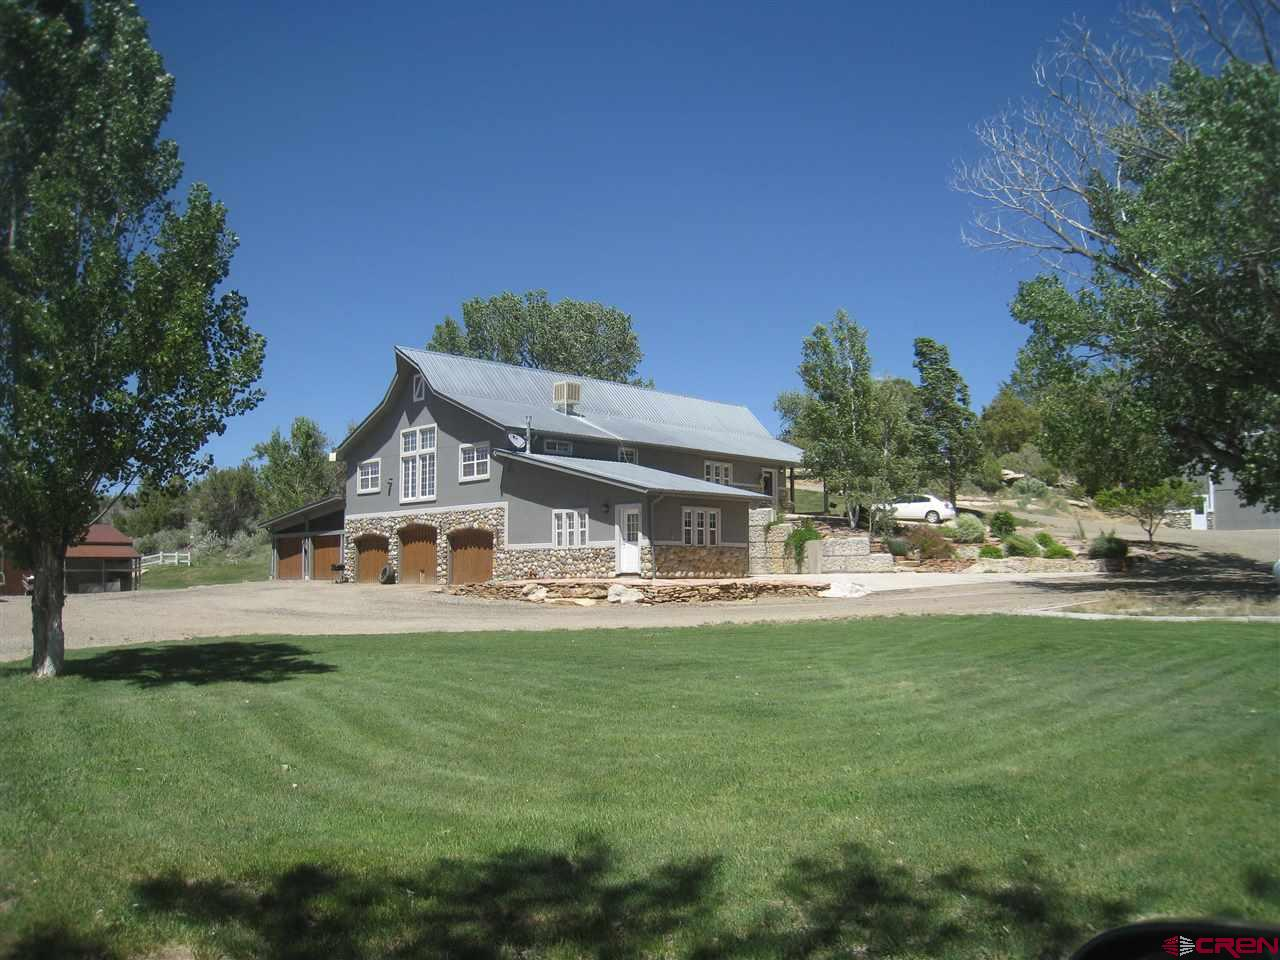 This higher level of home is nestled in some the counties historically productive farm ground area's with outstanding views of the Sleeping Ute Mountain. Splashes of granite and tile adorn the 4 bedroom 3 bath home with lots of open living area and a very functional floor plan. Amazing landscaping with a reflection pool and outside patio creates a very inviting atmosphere for entertaining and relaxing overlooking the very productive irrigated pasture of hay. 5 Car garage and an outstanding 35' X 50' , high ceiling barn plus a 20' X 50' lean to  leaves plenty of room for toy/boat storage and agriculture equipment needs. Plenty of irrigation water and plenty of privacy.  Pasture recently replanted with Alfalfa/Hay mixture, 70% orchard grass 30% tall fescue.  Plus band brand new side roll irrigation equipment for pasture!